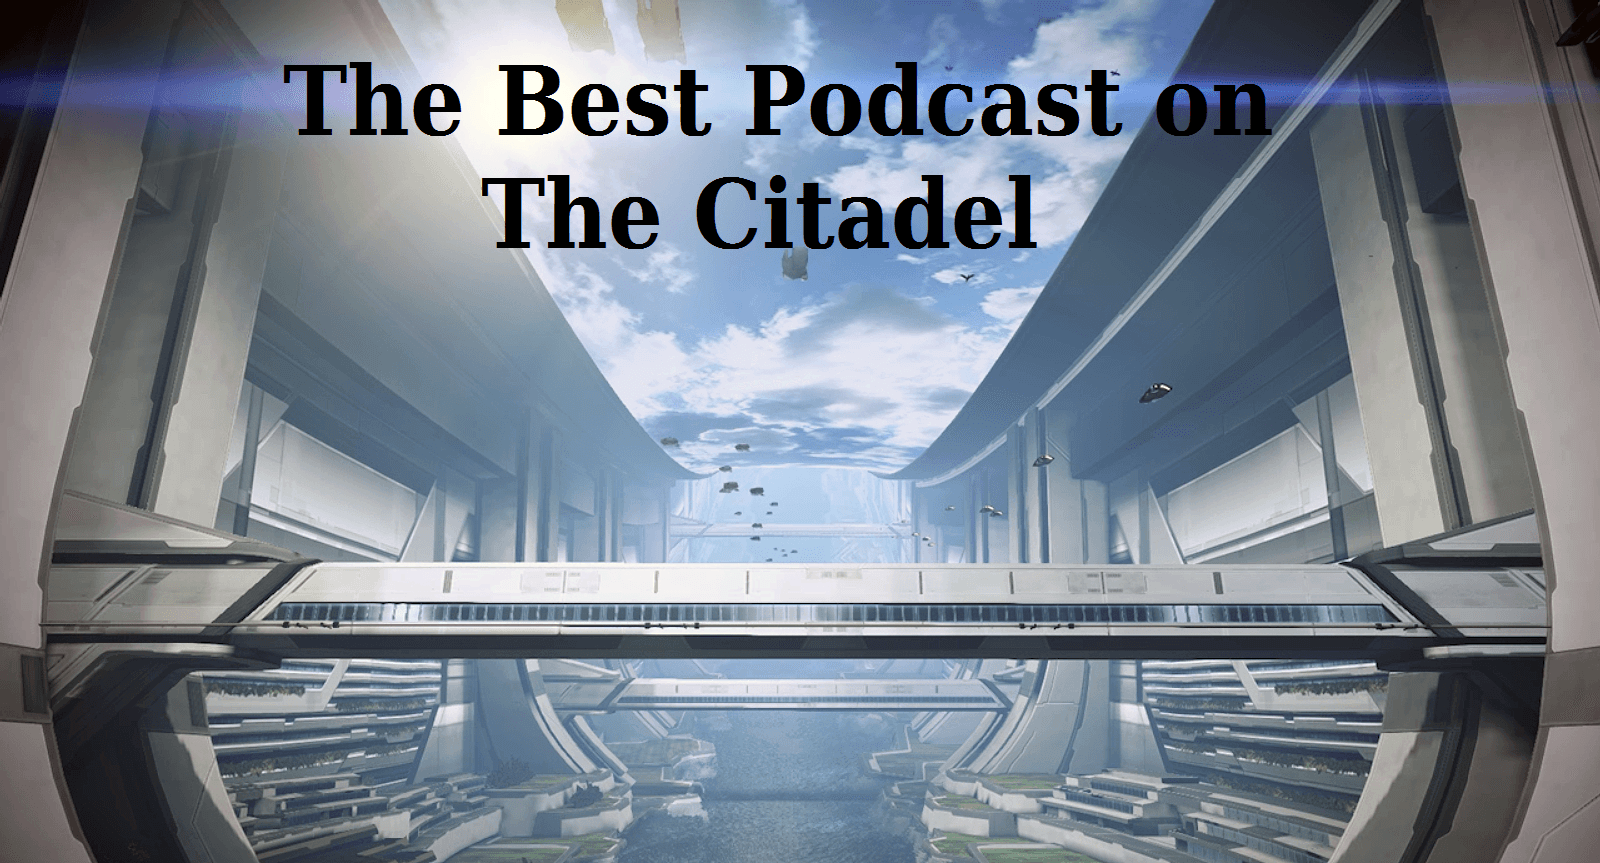 The Best Podcast on the Citadel, Ep. 38